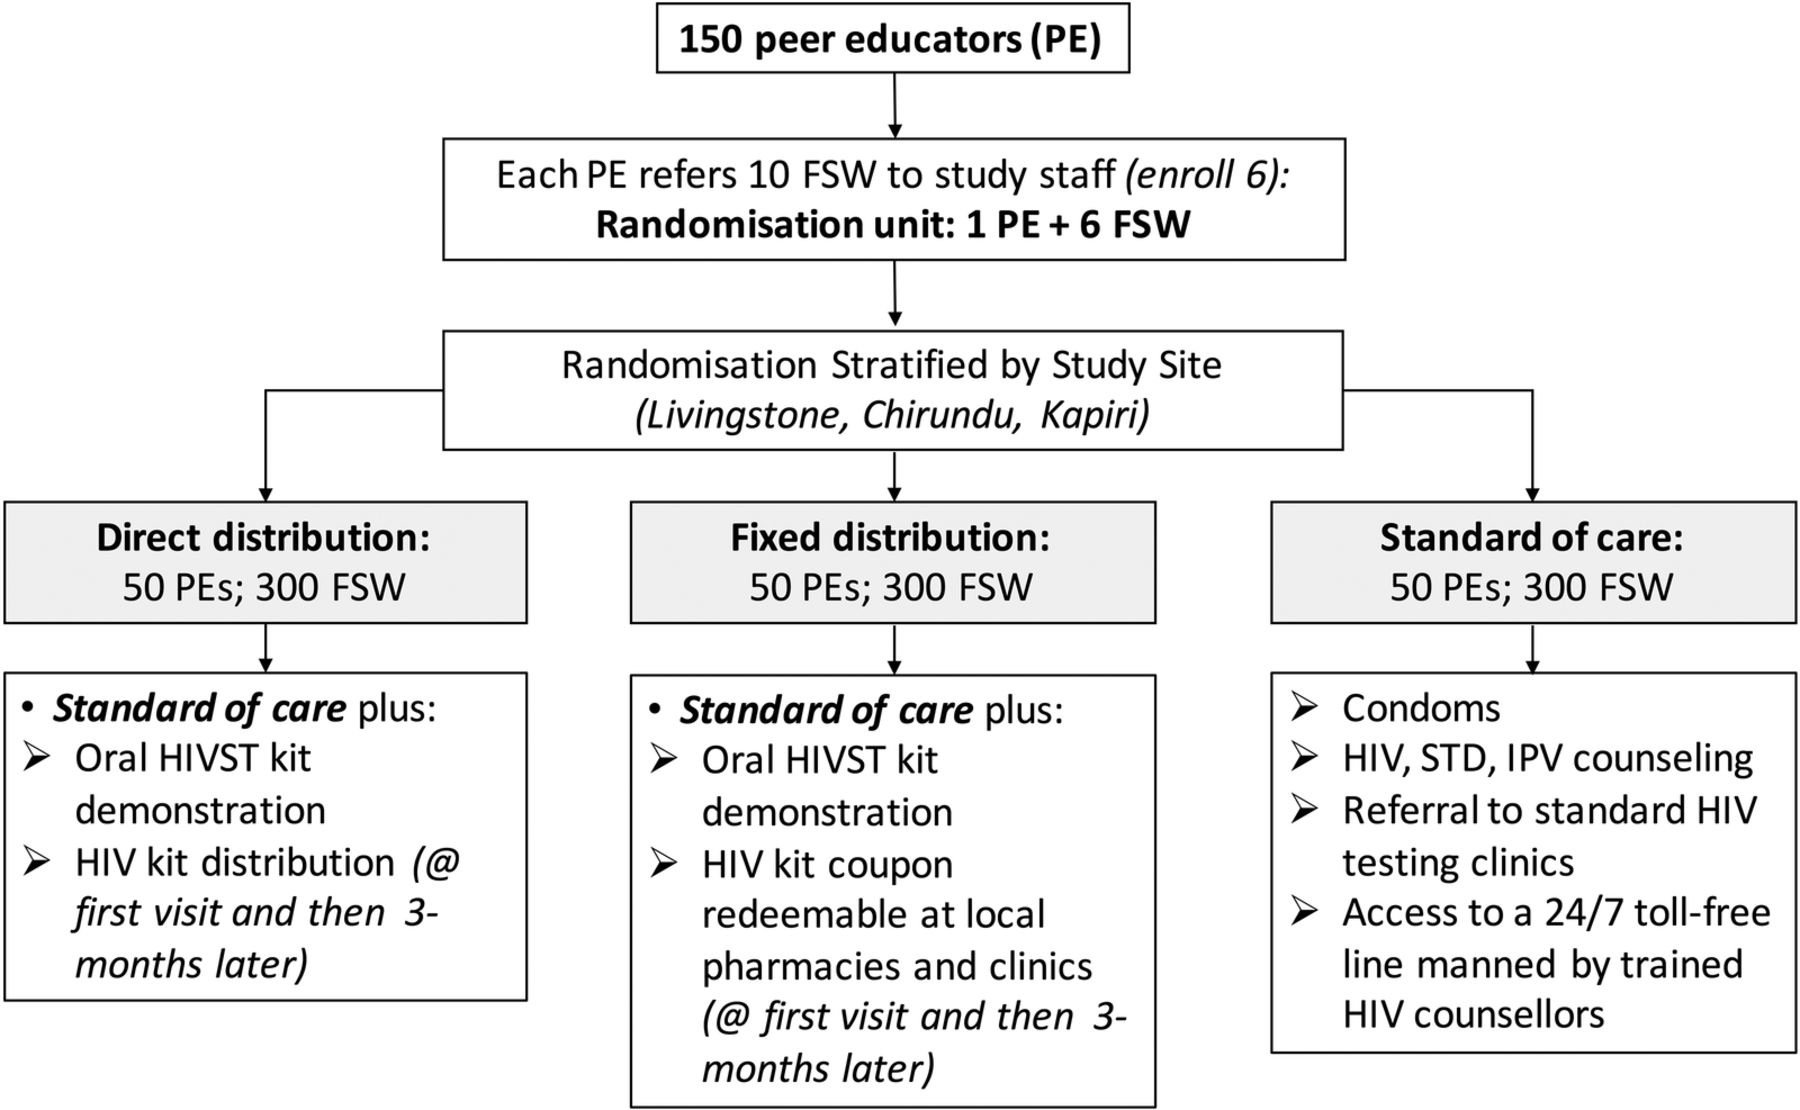 Zambian Peer Educators for HIV SelfTesting (ZEST) study: rationale and design of a cluster